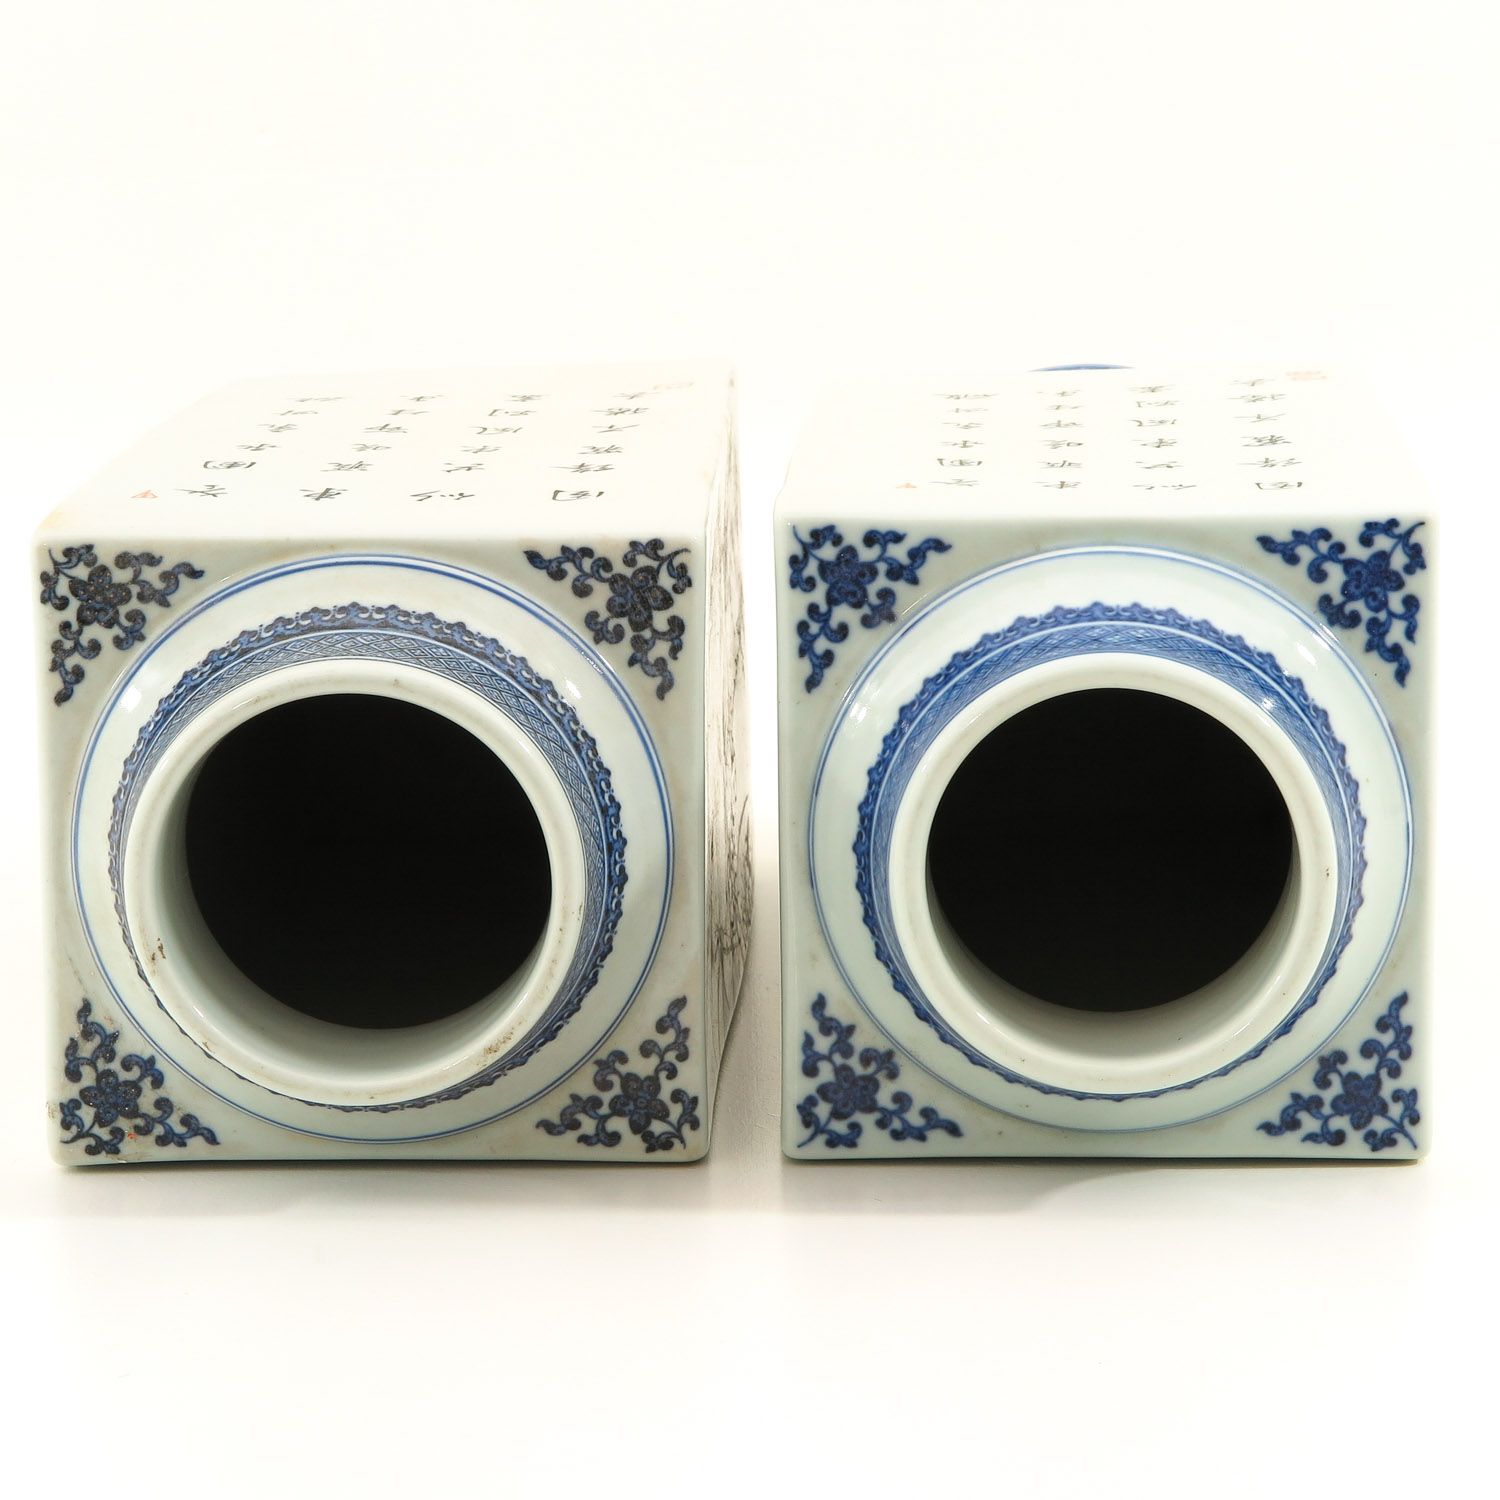 Lot 7047 - A Pair of Square Famille Rose Vases